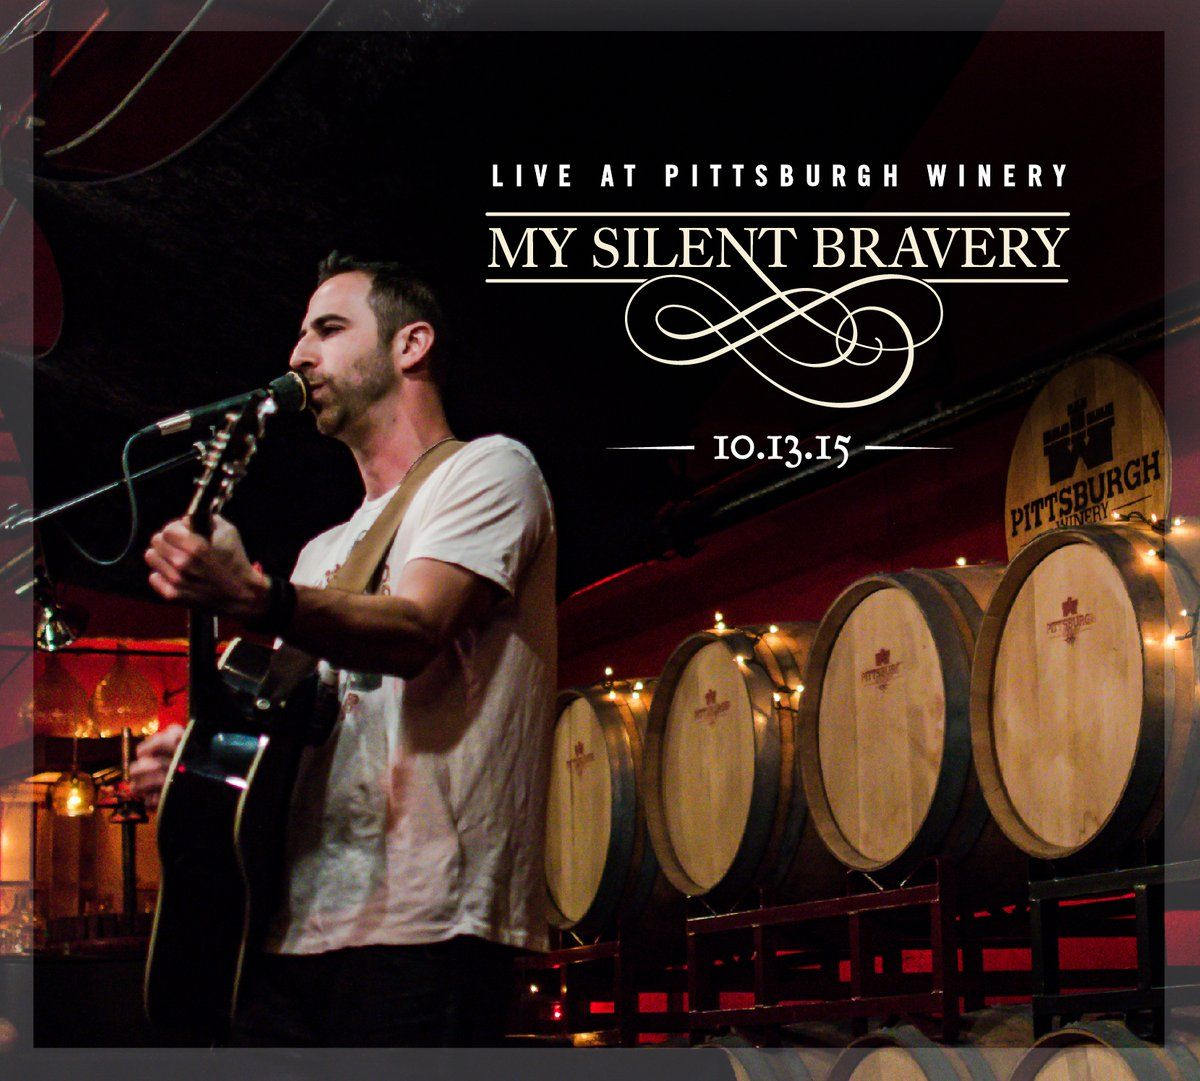 HappyHolidays from MSB! Offering a FREE download @noisetrade of a 2015 solo acoustic show - MSB Live at PGH Winery! http://noisetrade.com/mysilentbravery/live-at-pittsburgh-winery-101315 …